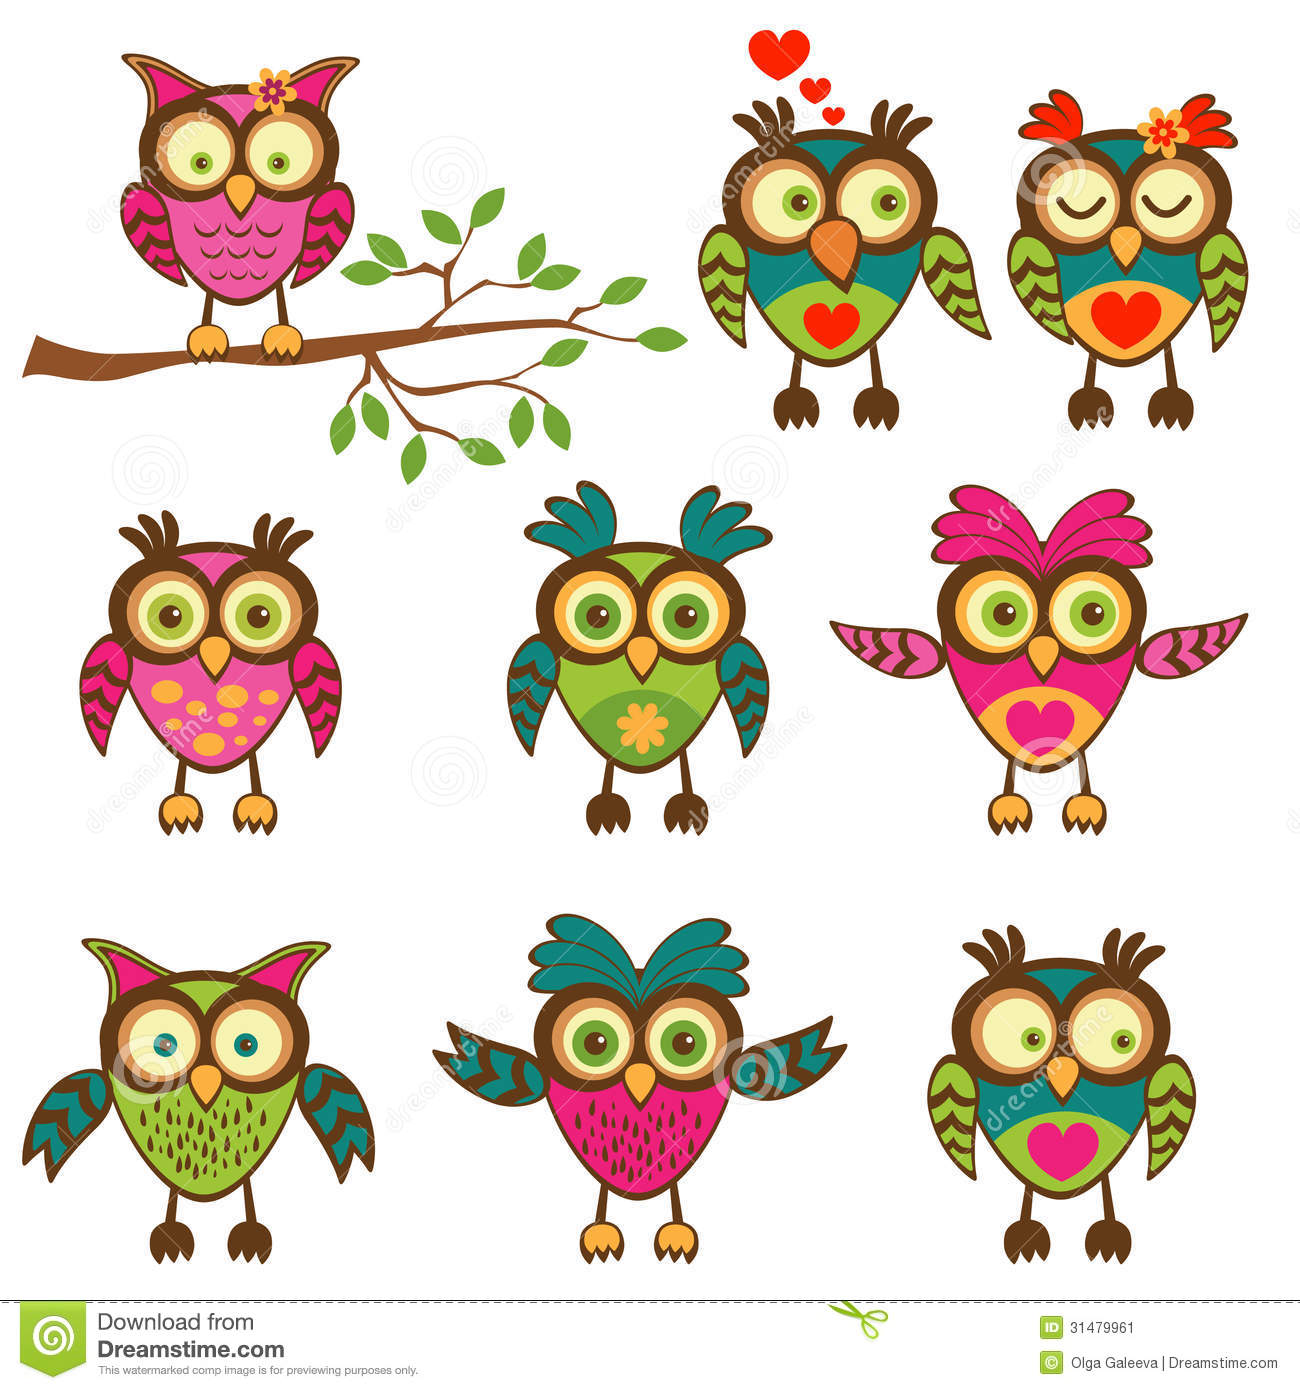 Colorful Pictures Of Owls Cute Colorful Owls Collection Stock Image Image 31479961